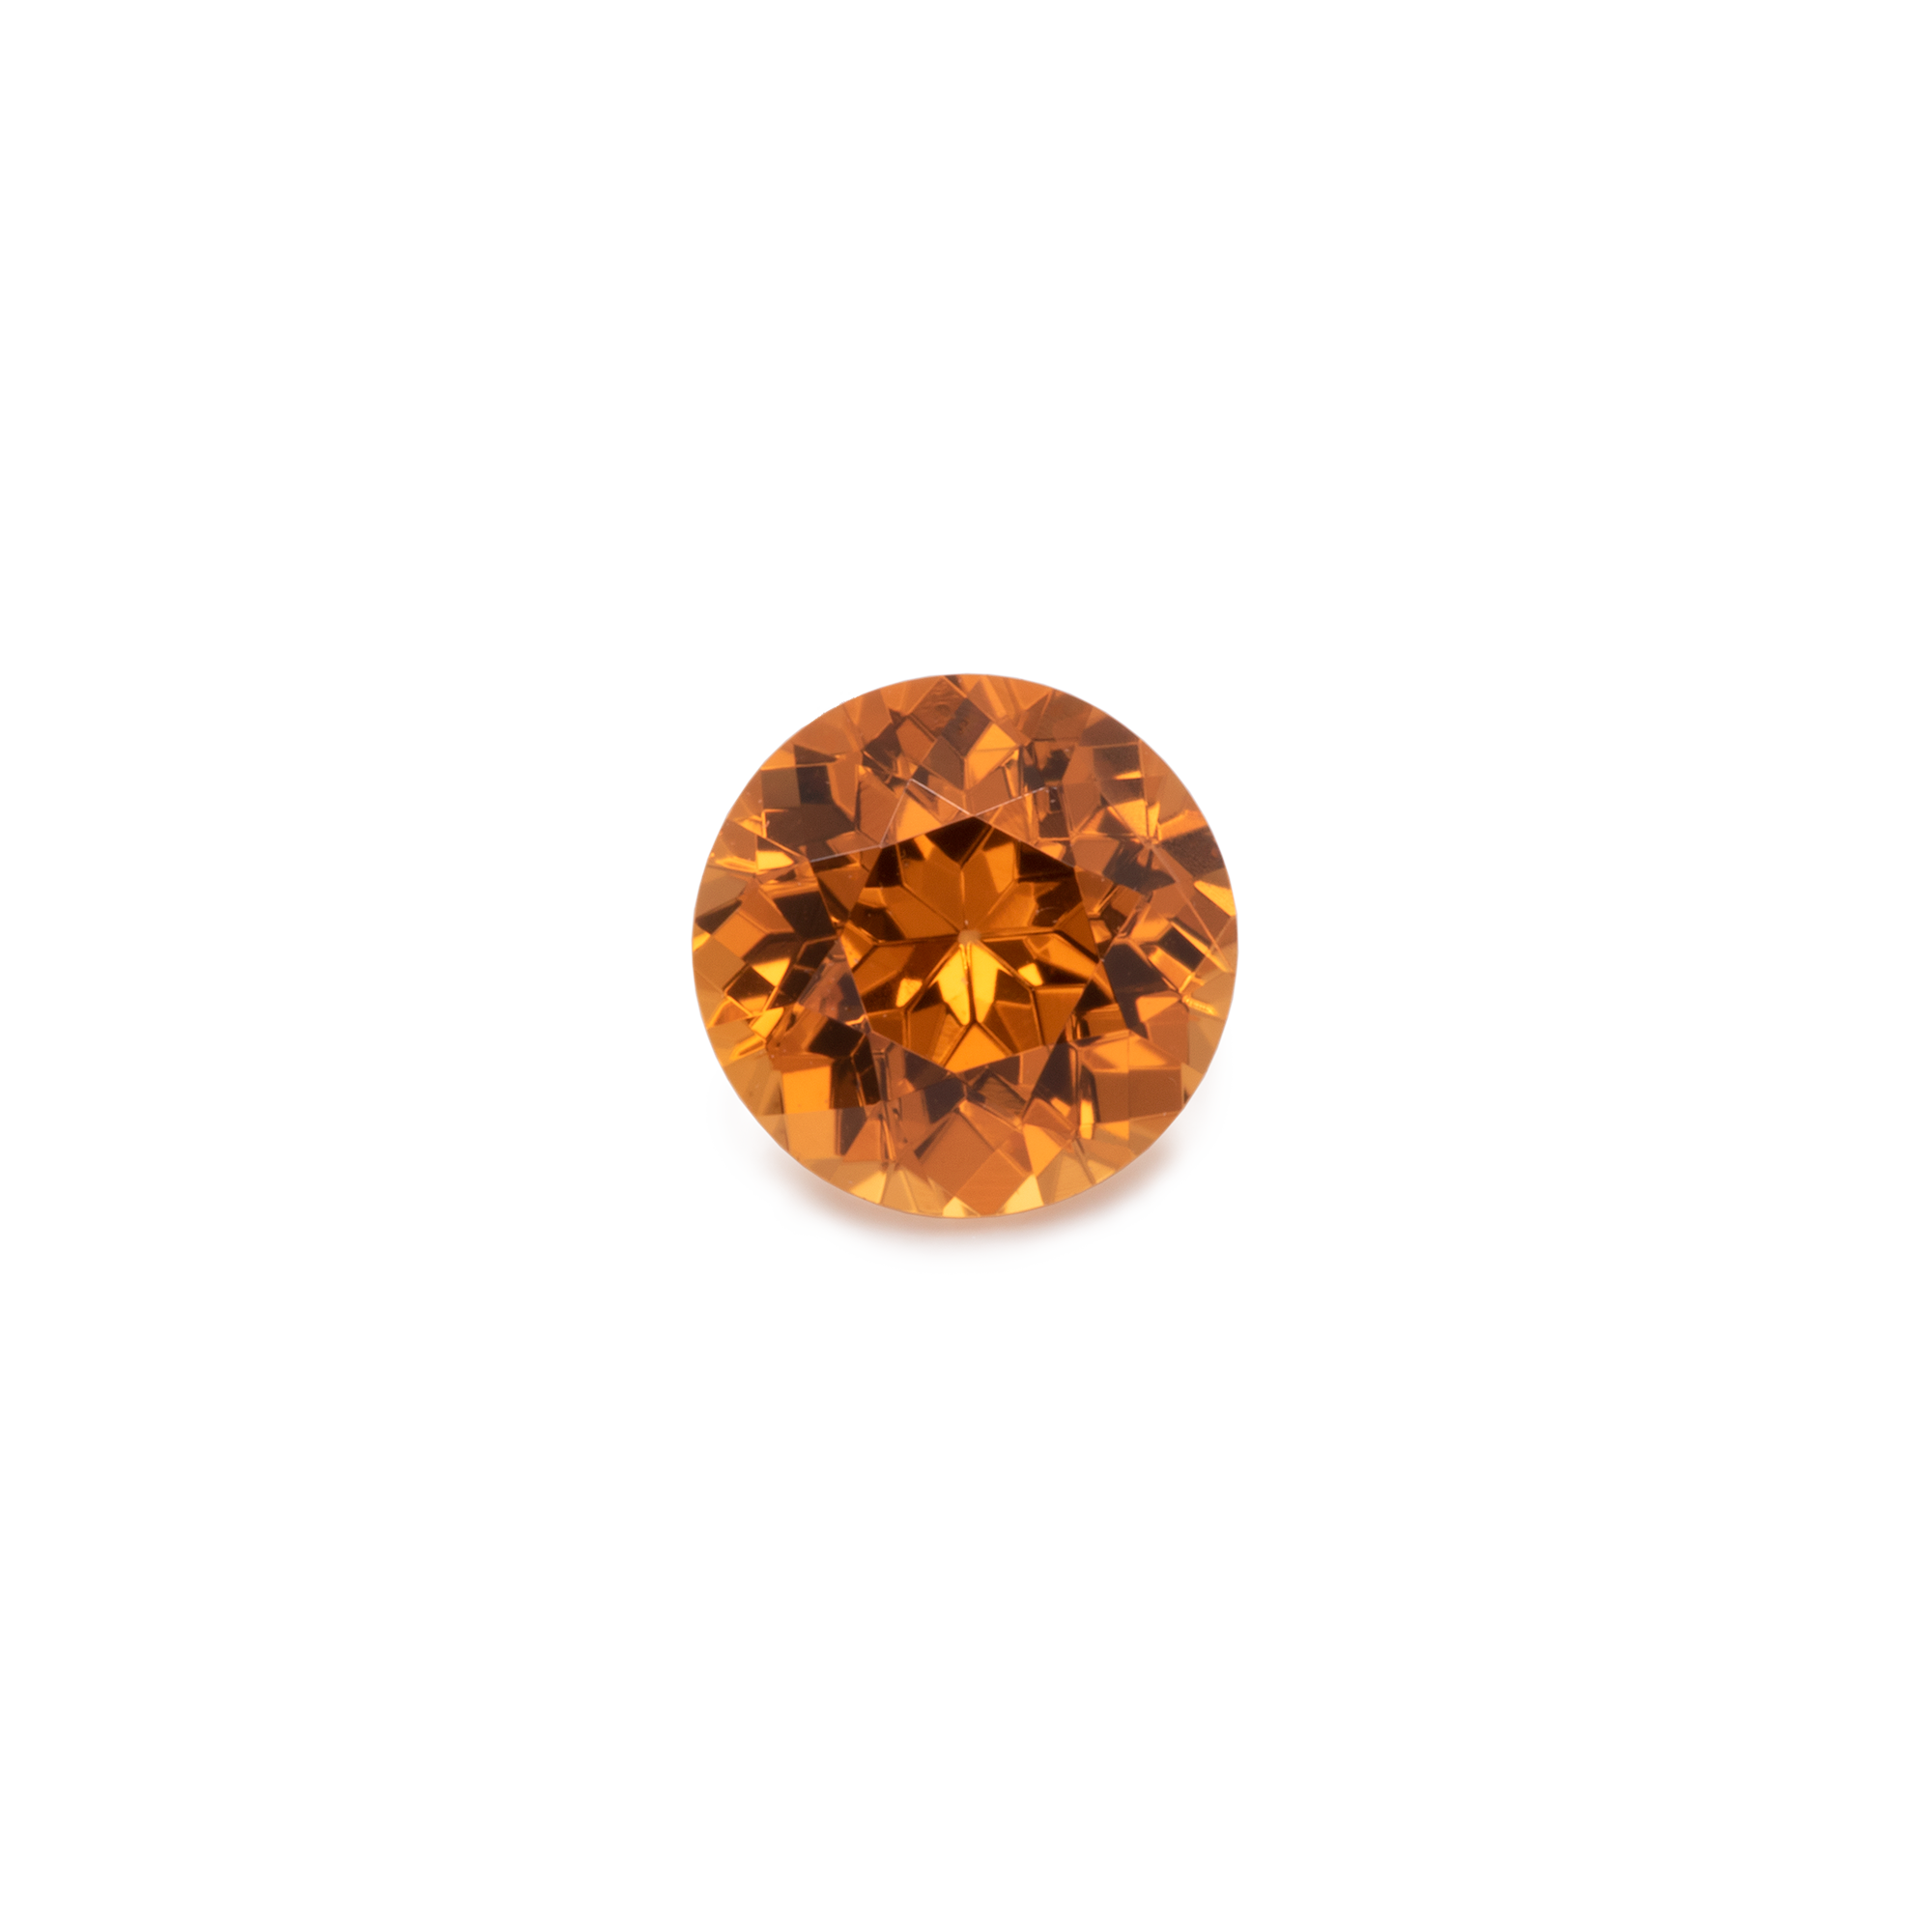 Mandarin Garnet - orange, round, 4x4 mm, 0.3-0.37 cts, No. MG70002